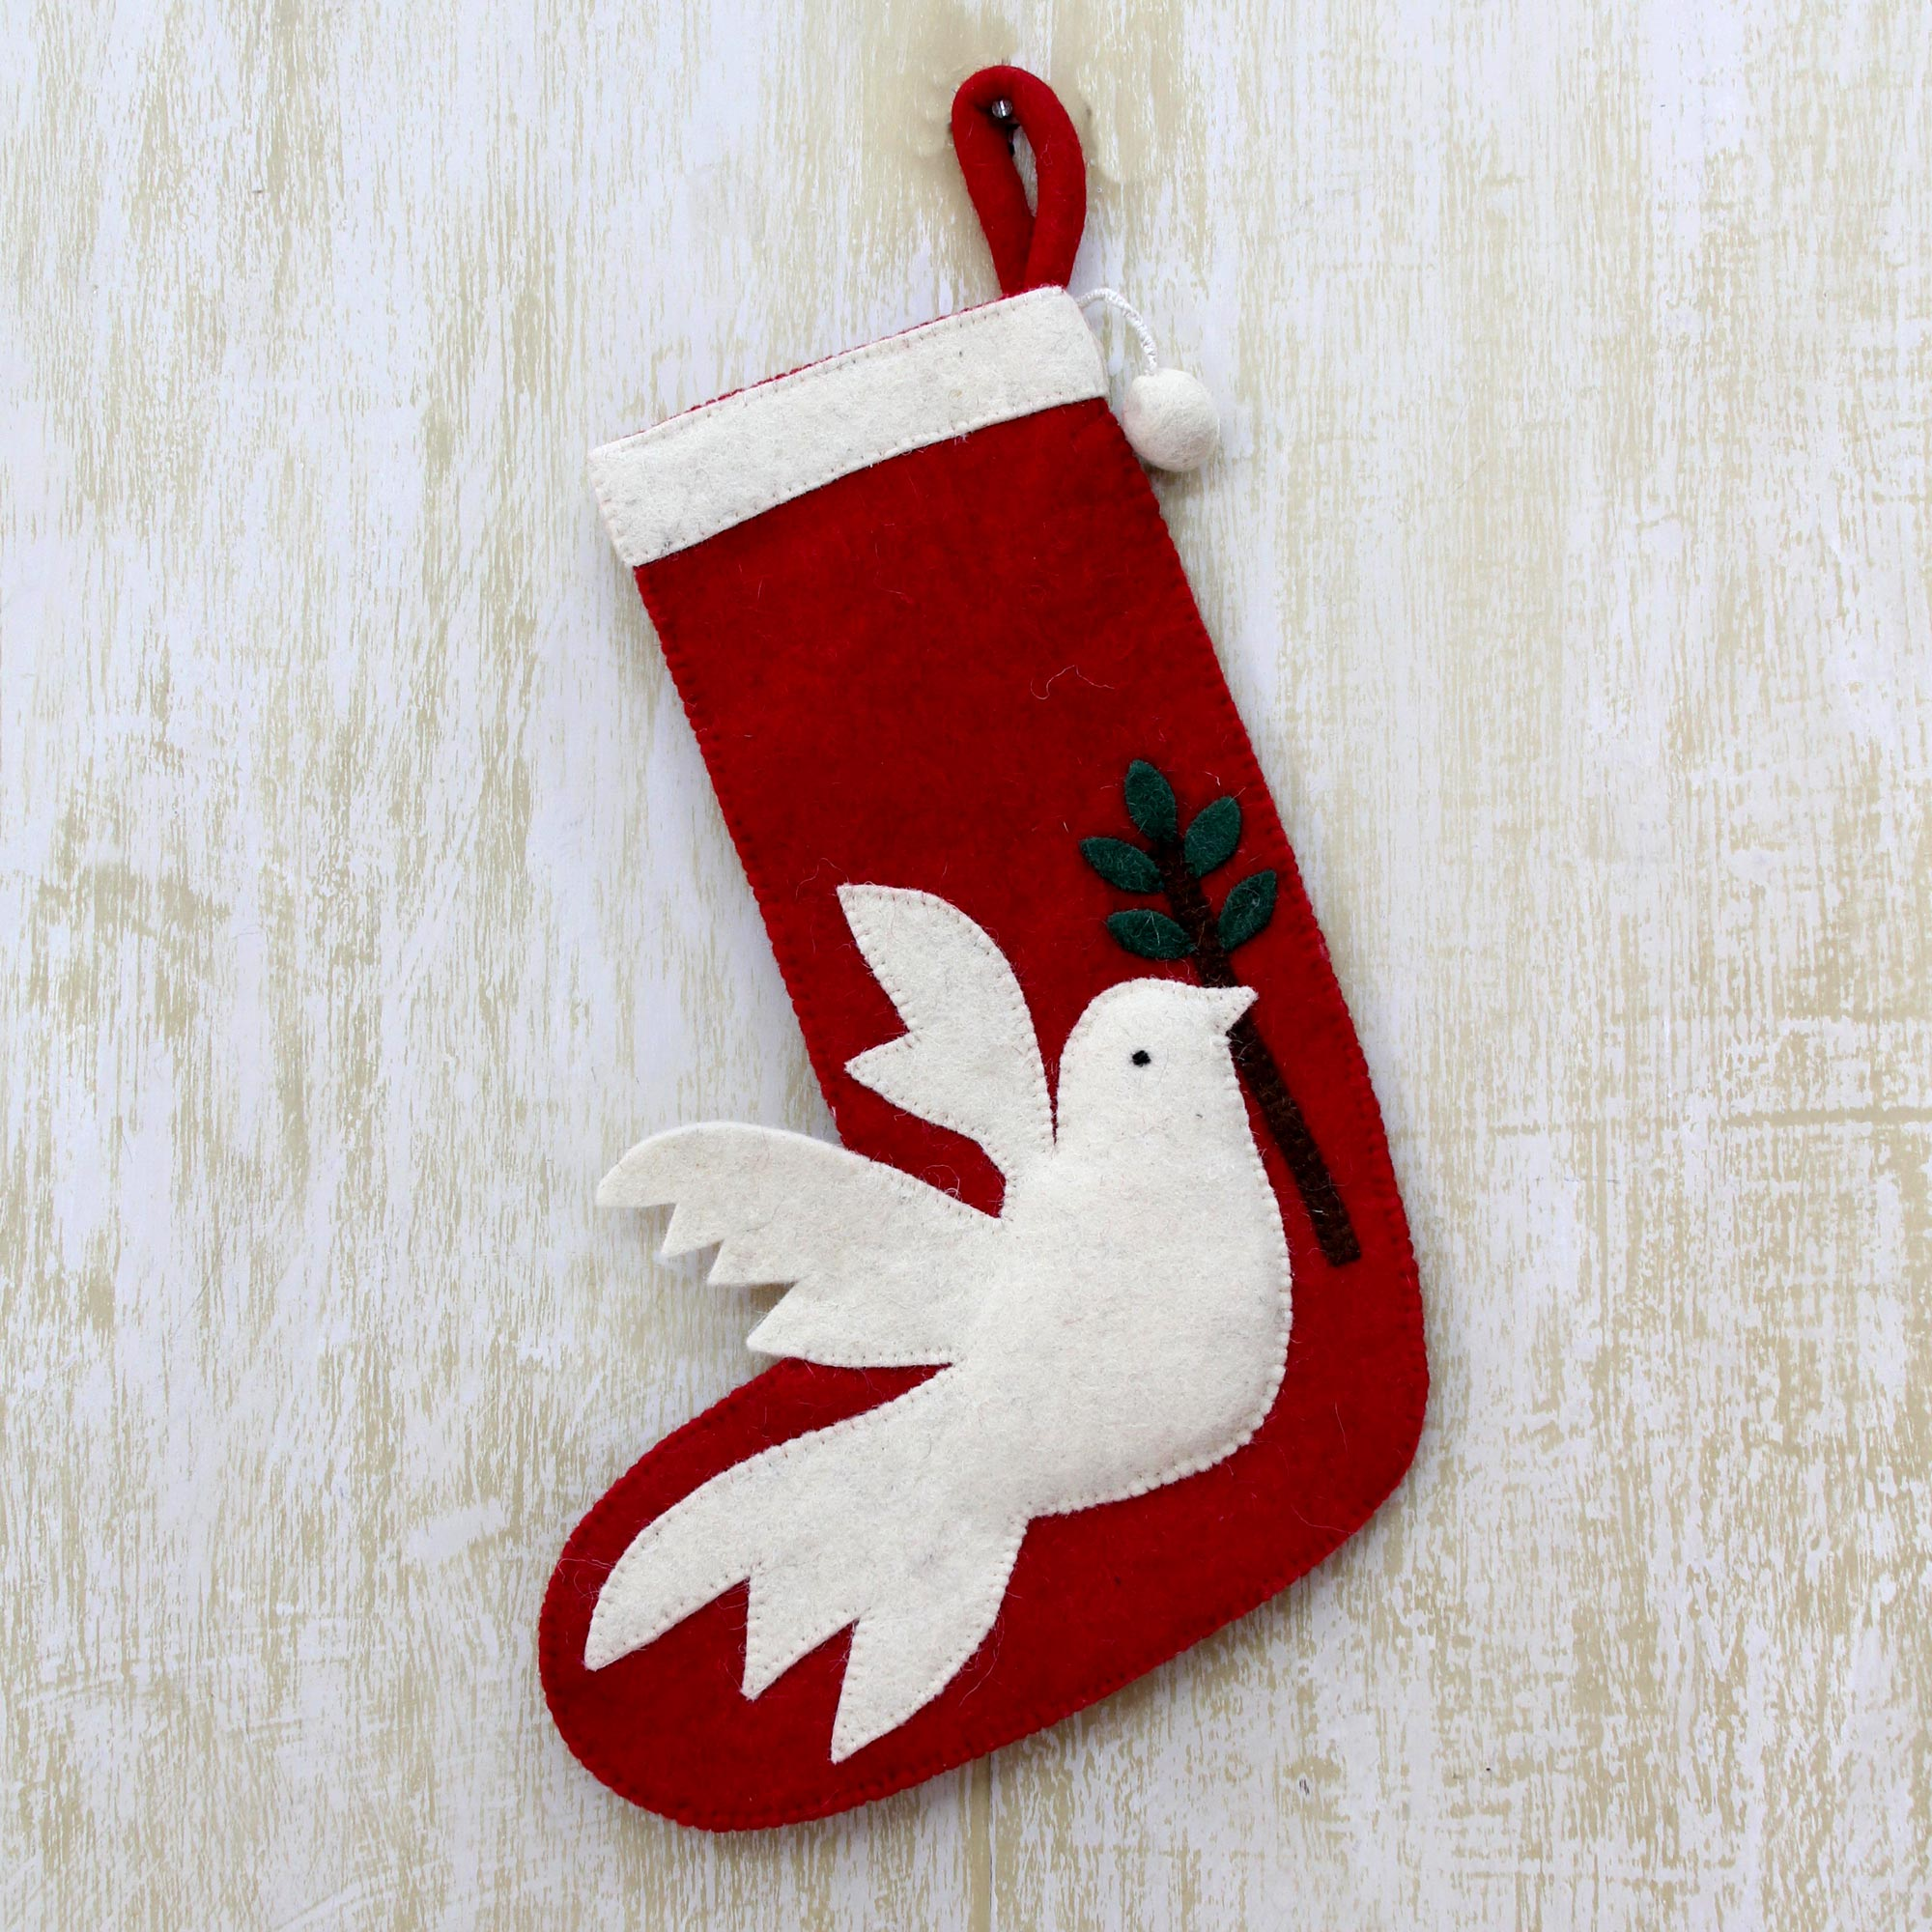 Peaceful Dove Artisan hand crafted Peace Themed Red Holiday Stocking with Dove Motif Unique Holiday decor treasures